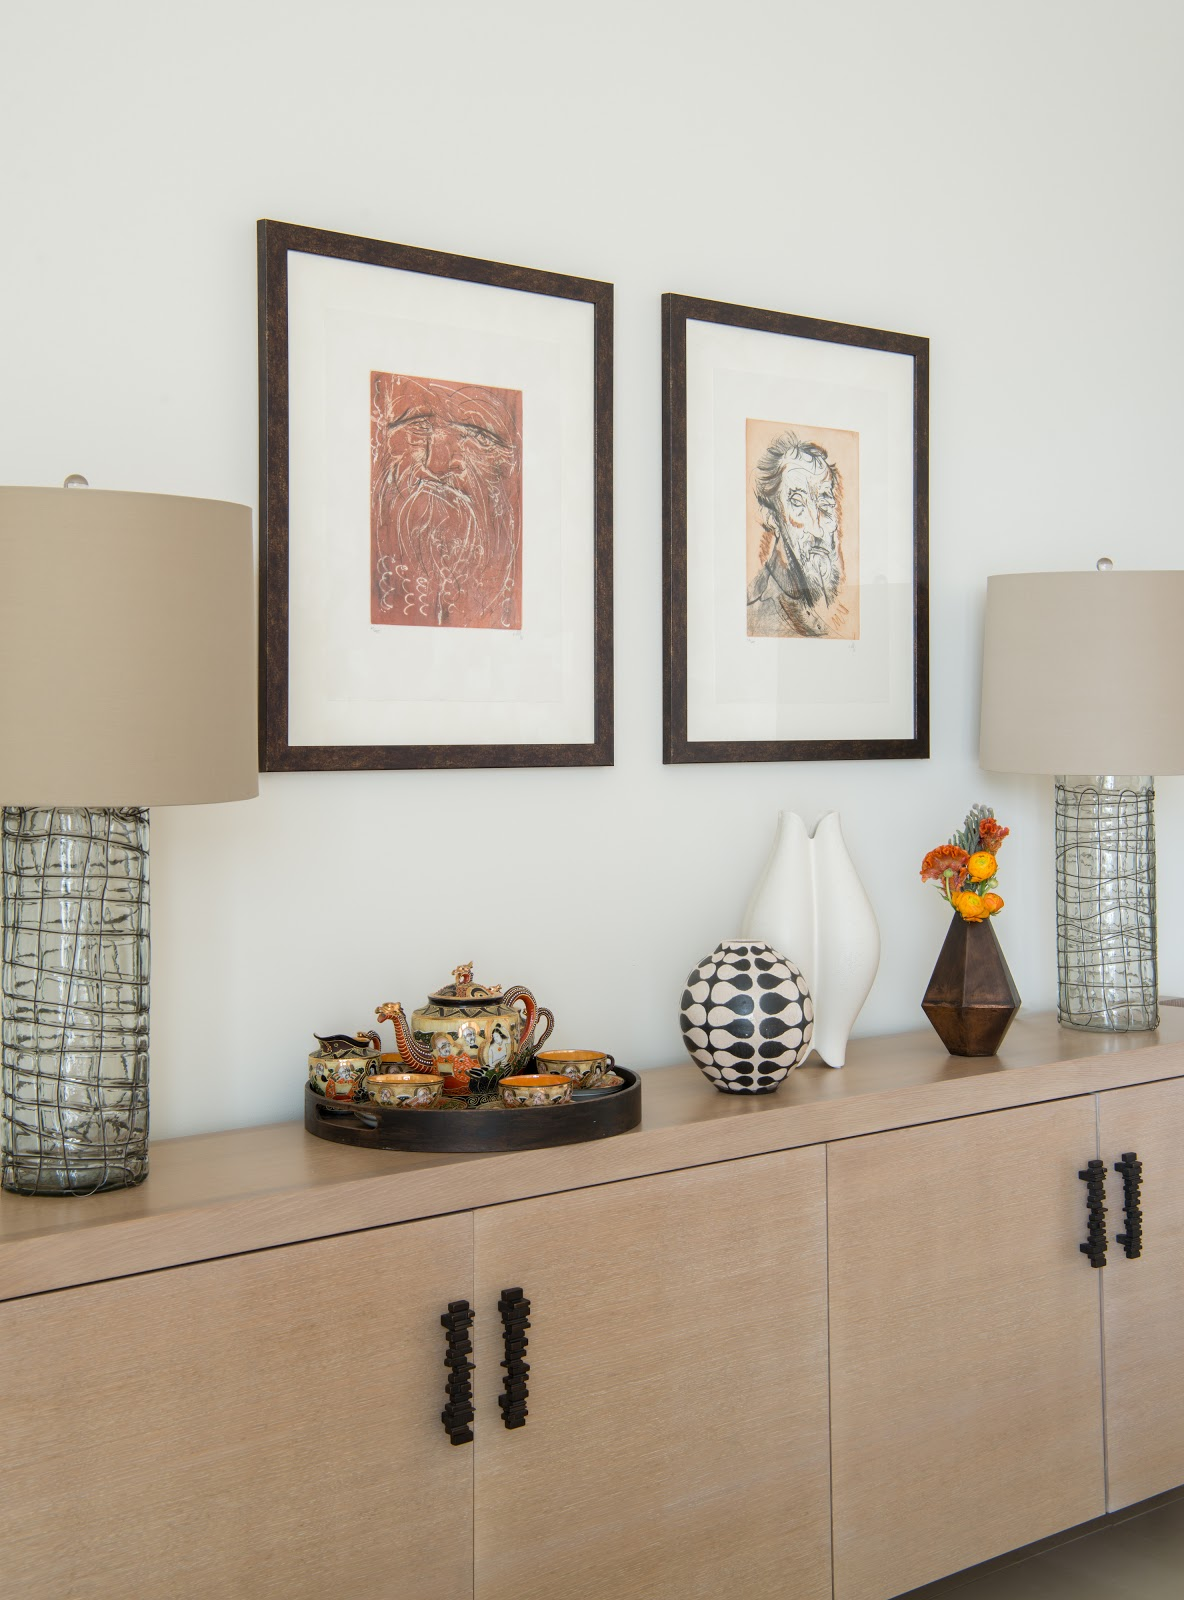 Collected high-rise with vintage tea set, industrial lamps, pottery and framed impressionist art - Laura U Interior Design